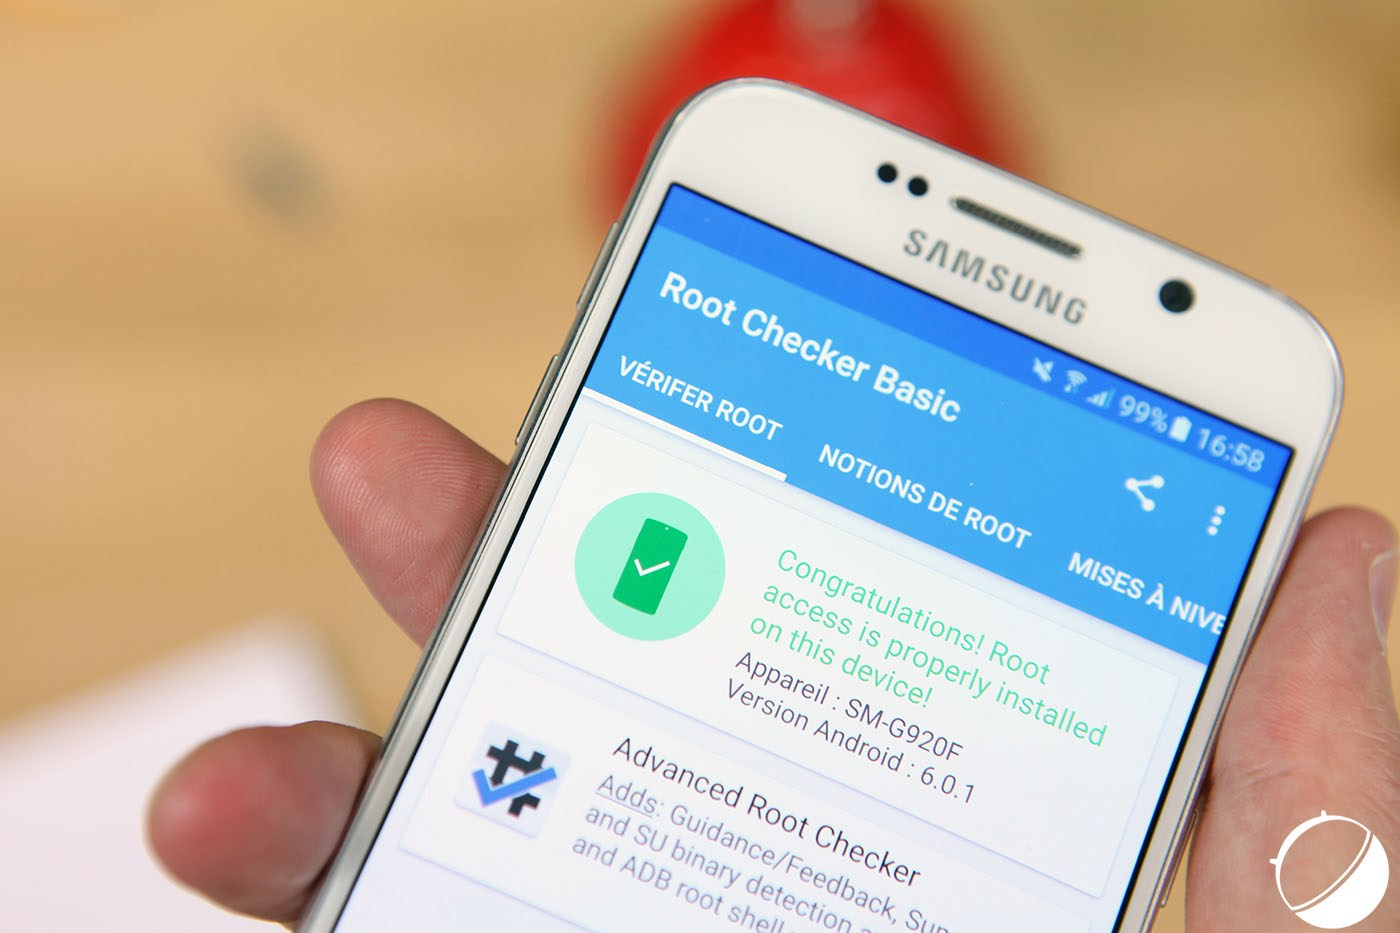 Tuto : Comment rooter le Samsung Galaxy S6 (edge) sous Android 6.0 Marshmallow ?